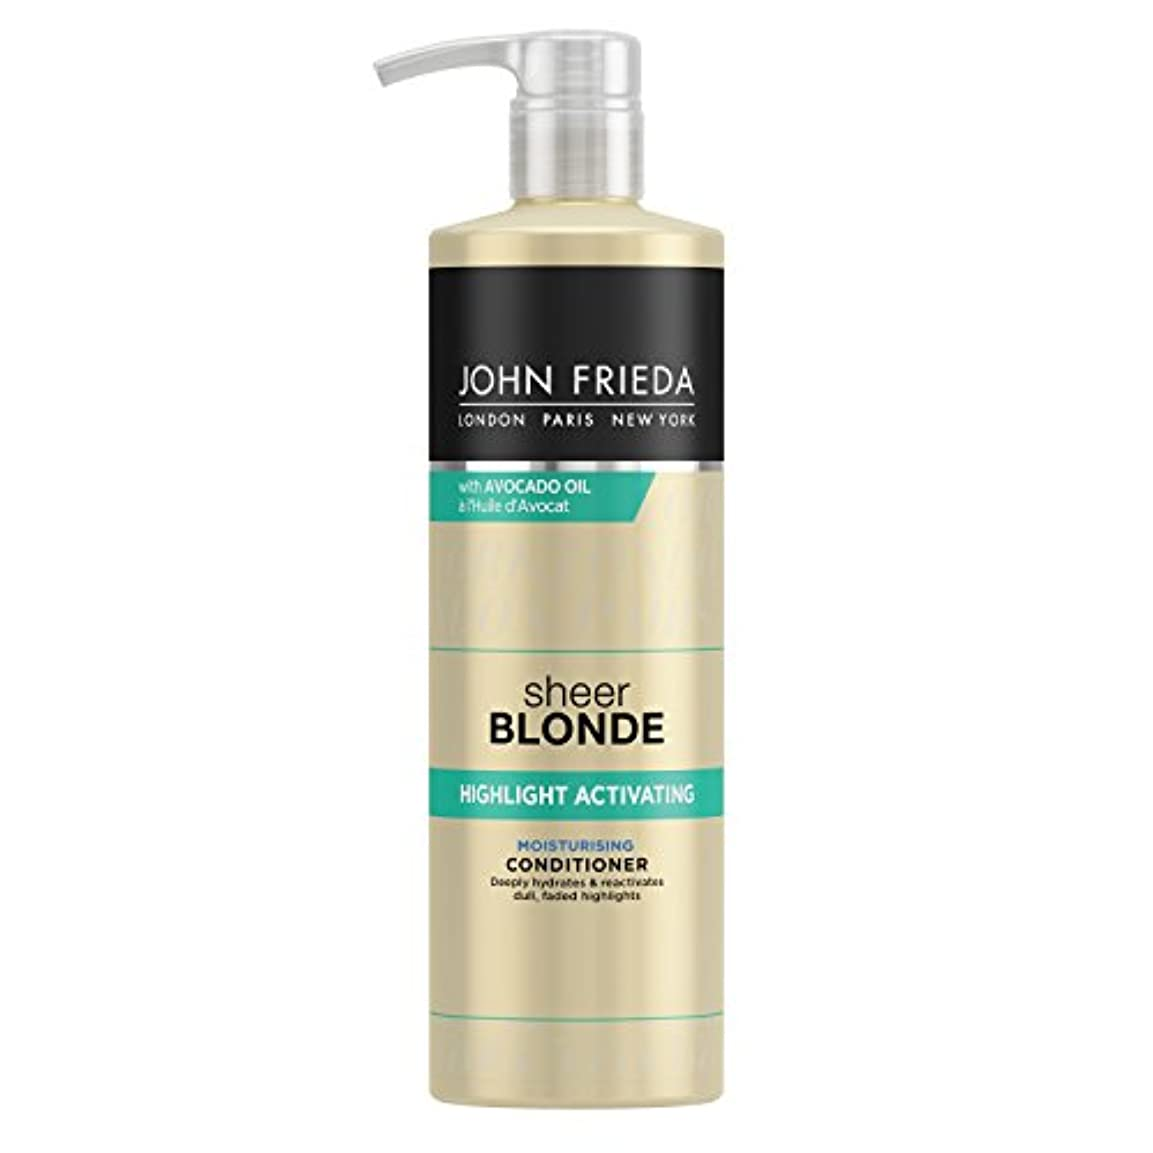 正当なみなさん哺乳類John Frieda Sheer Blonde Highlight Activating Moisturising Conditioner for Lighter Shades 500ml